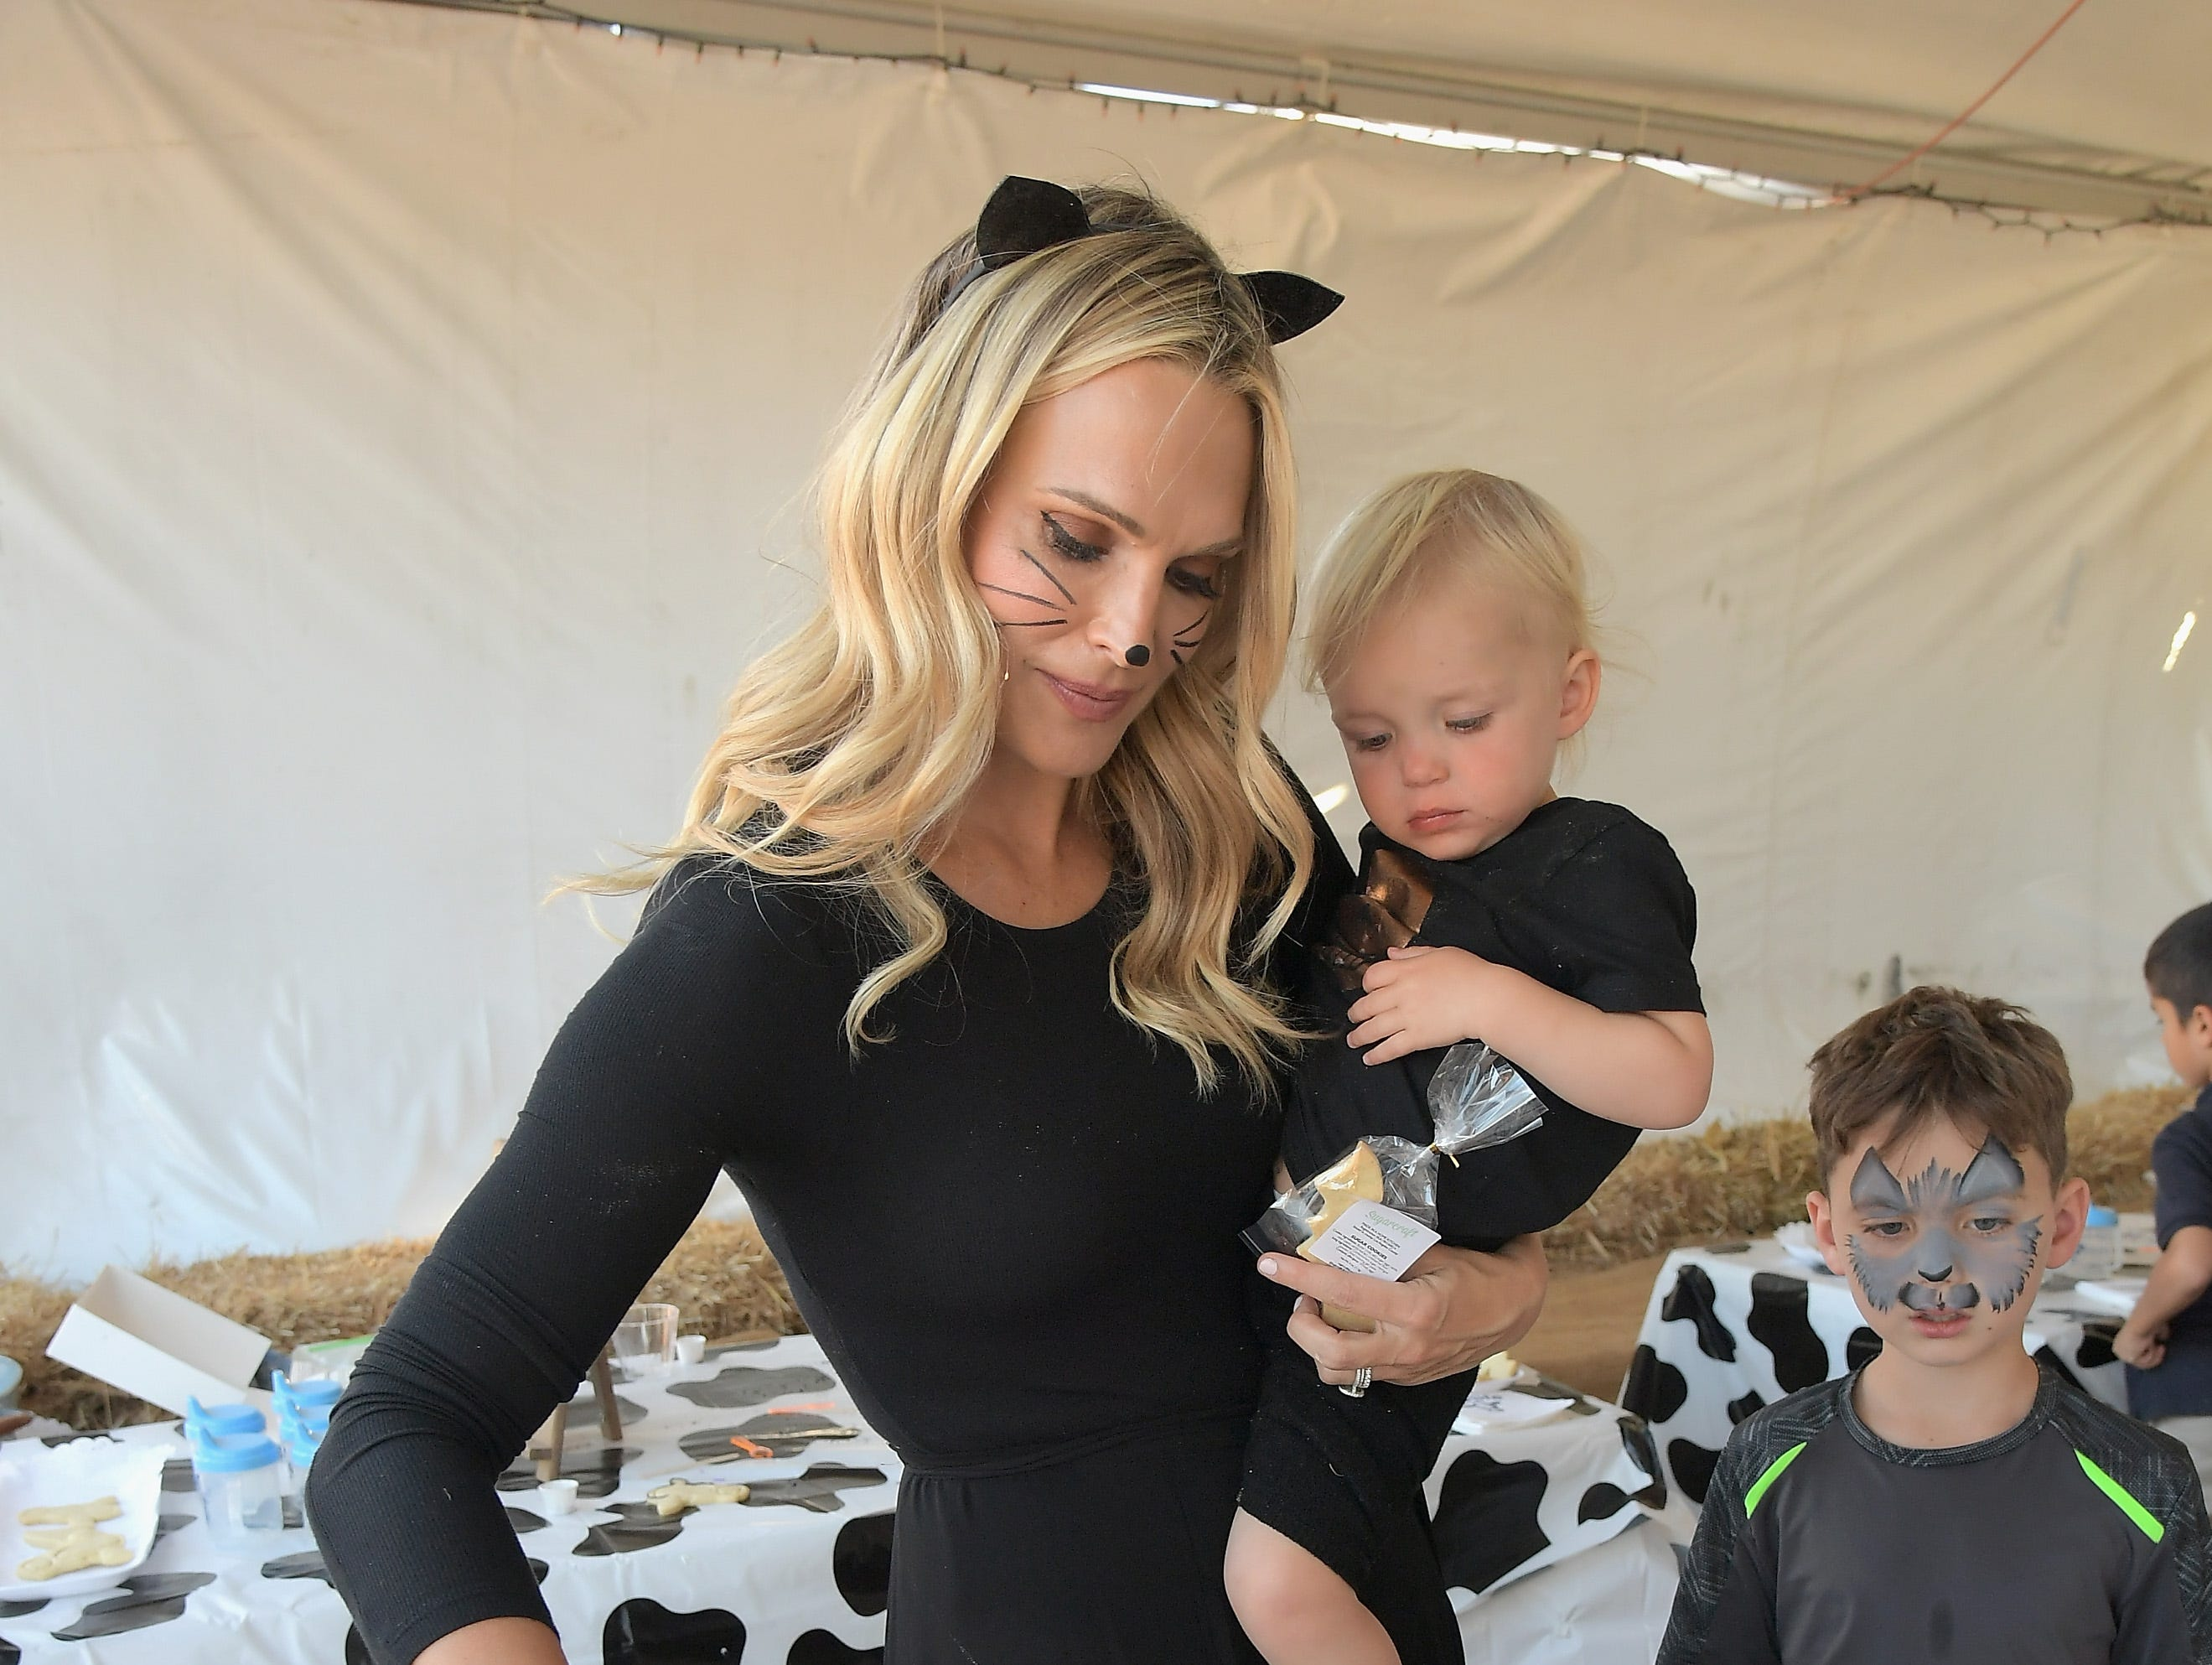 CULVER CITY, CA - OCTOBER 15:  Molly Sims and Grey Douglas Stuber attend The fairlife Family Fun Festival Hosted by fairlife Ultra-Filtered Milk at Mr. Bones Pumpkin Patch on October 15, 2018 in Culver City, California.  (Photo by Charley Gallay/Getty Images for fairlife ) ORG XMIT: 775241654 ORIG FILE ID: 1052220234